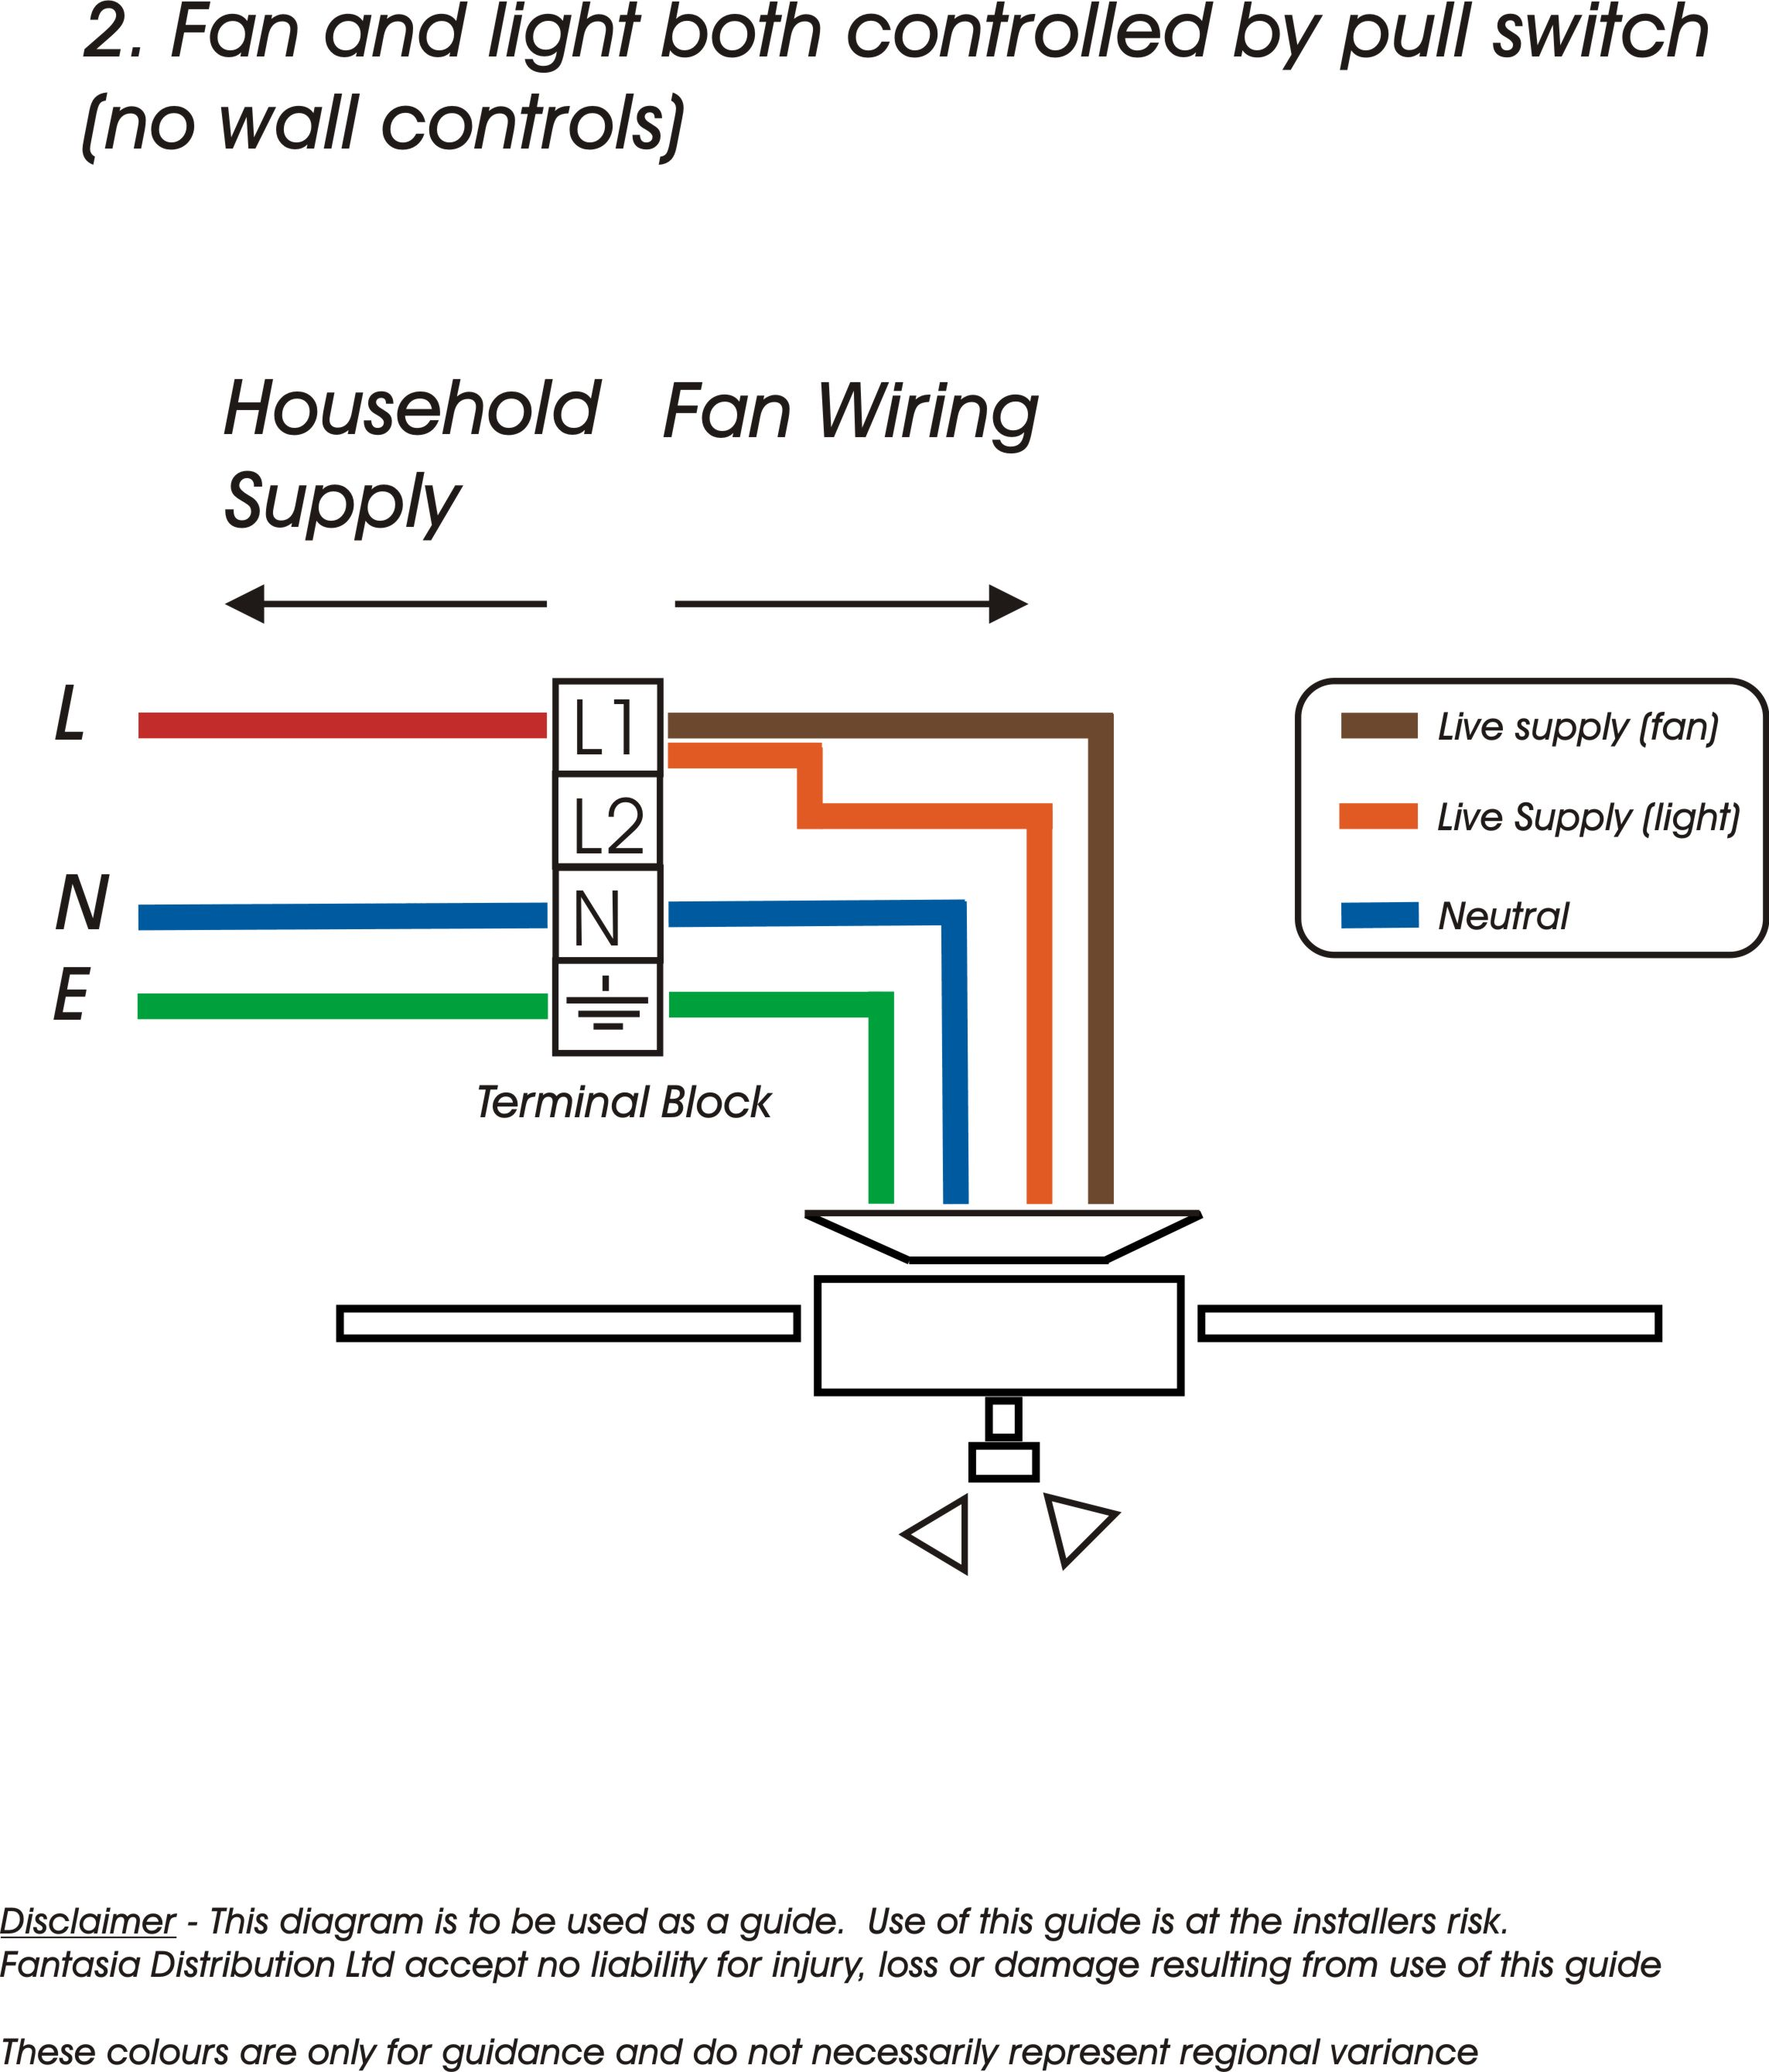 wiring ceiling fans 2 hampton bay ceiling fan motor wiring diagram integralbook com ceiling fan wiring diagram with remote control at gsmx.co